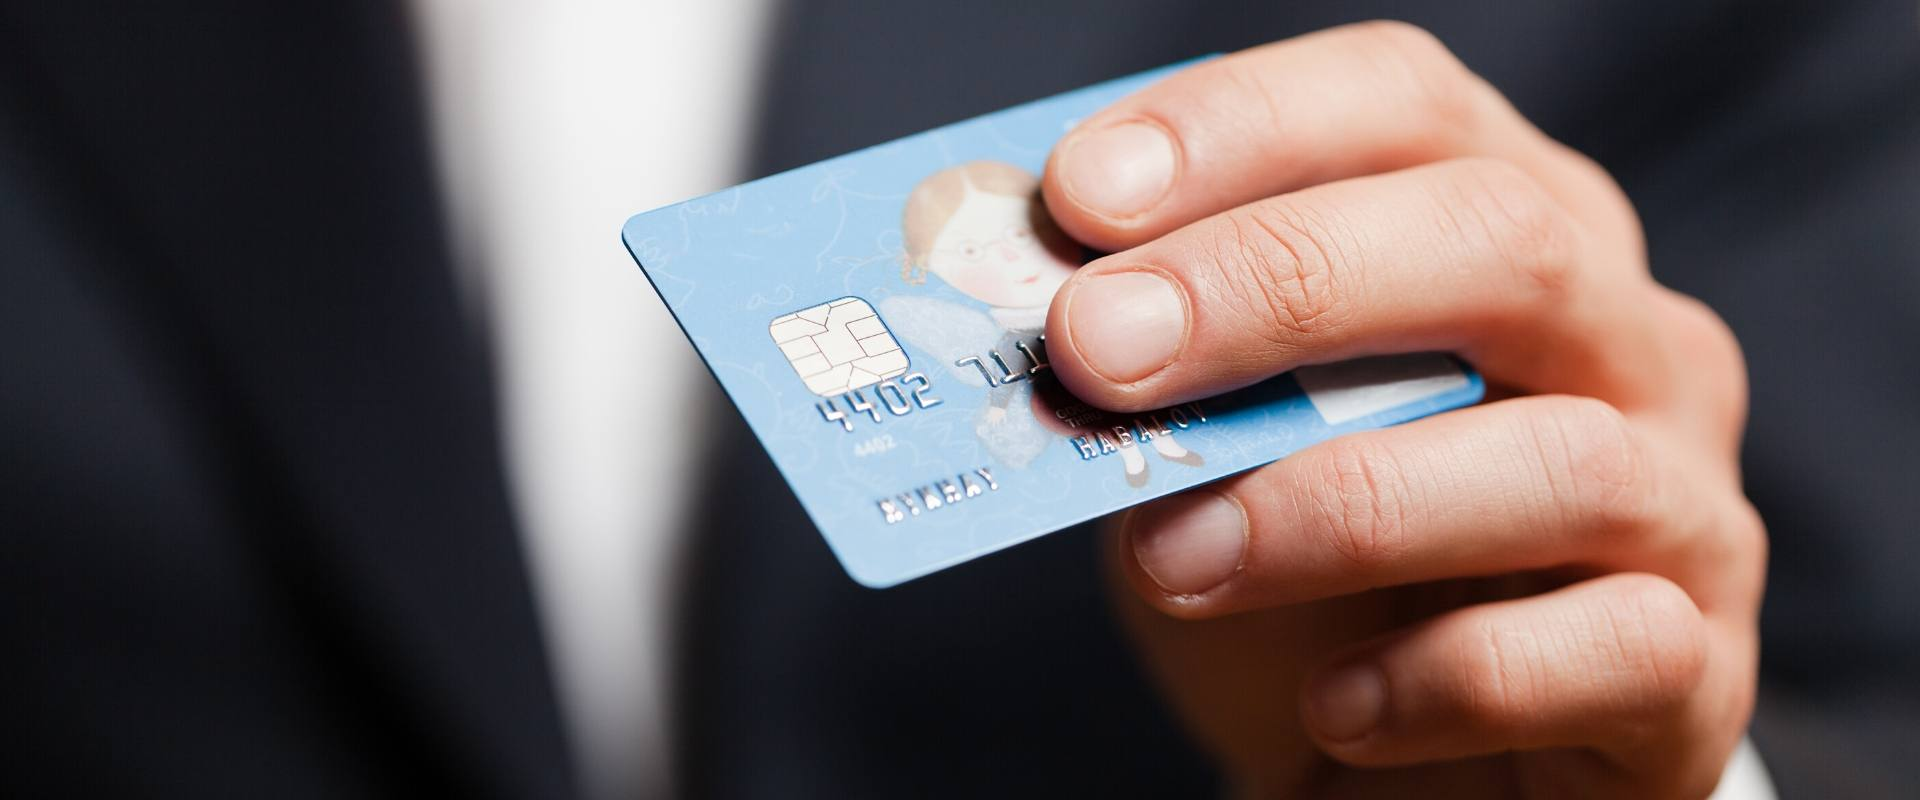 APS Partners with U.S. Bank to Offer AccelaPay Paycard Option